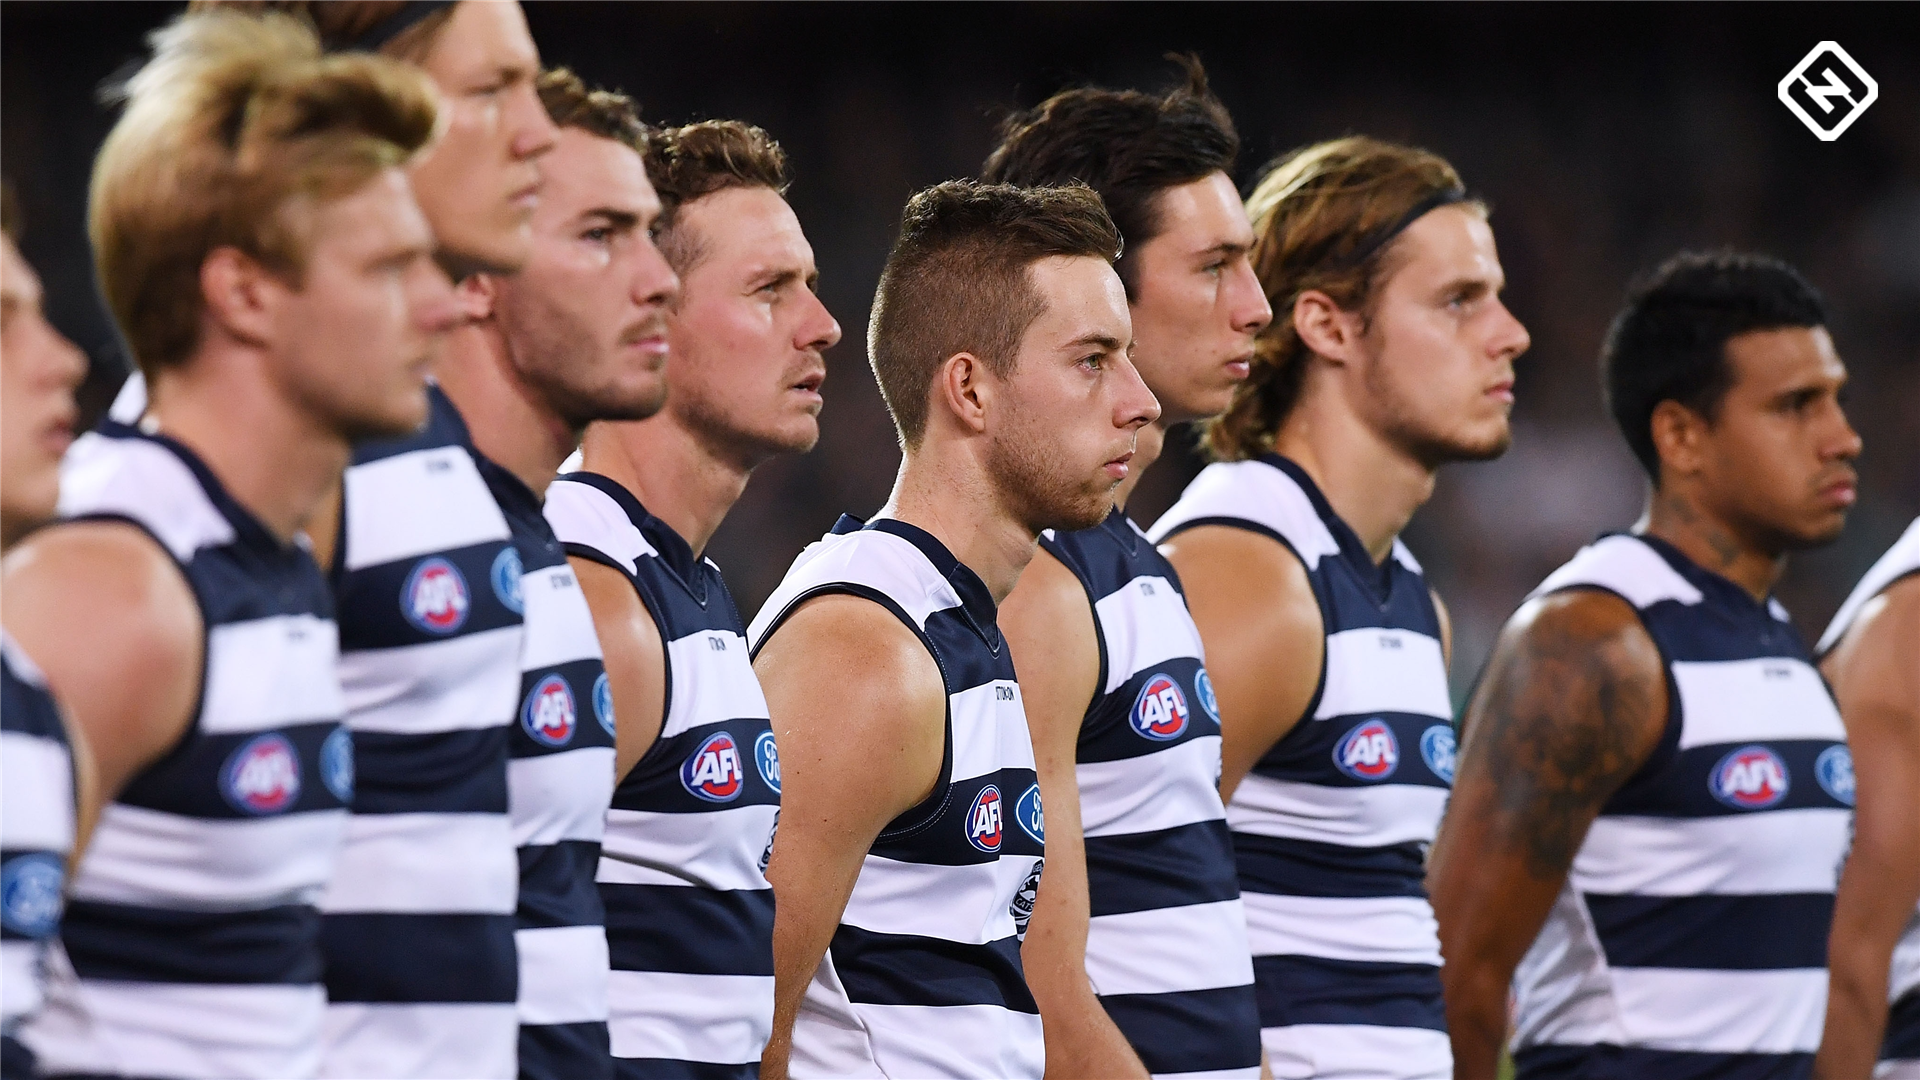 Geelong Cats List For 2019 After Afl Trade And Draft Periods Sporting News Australia